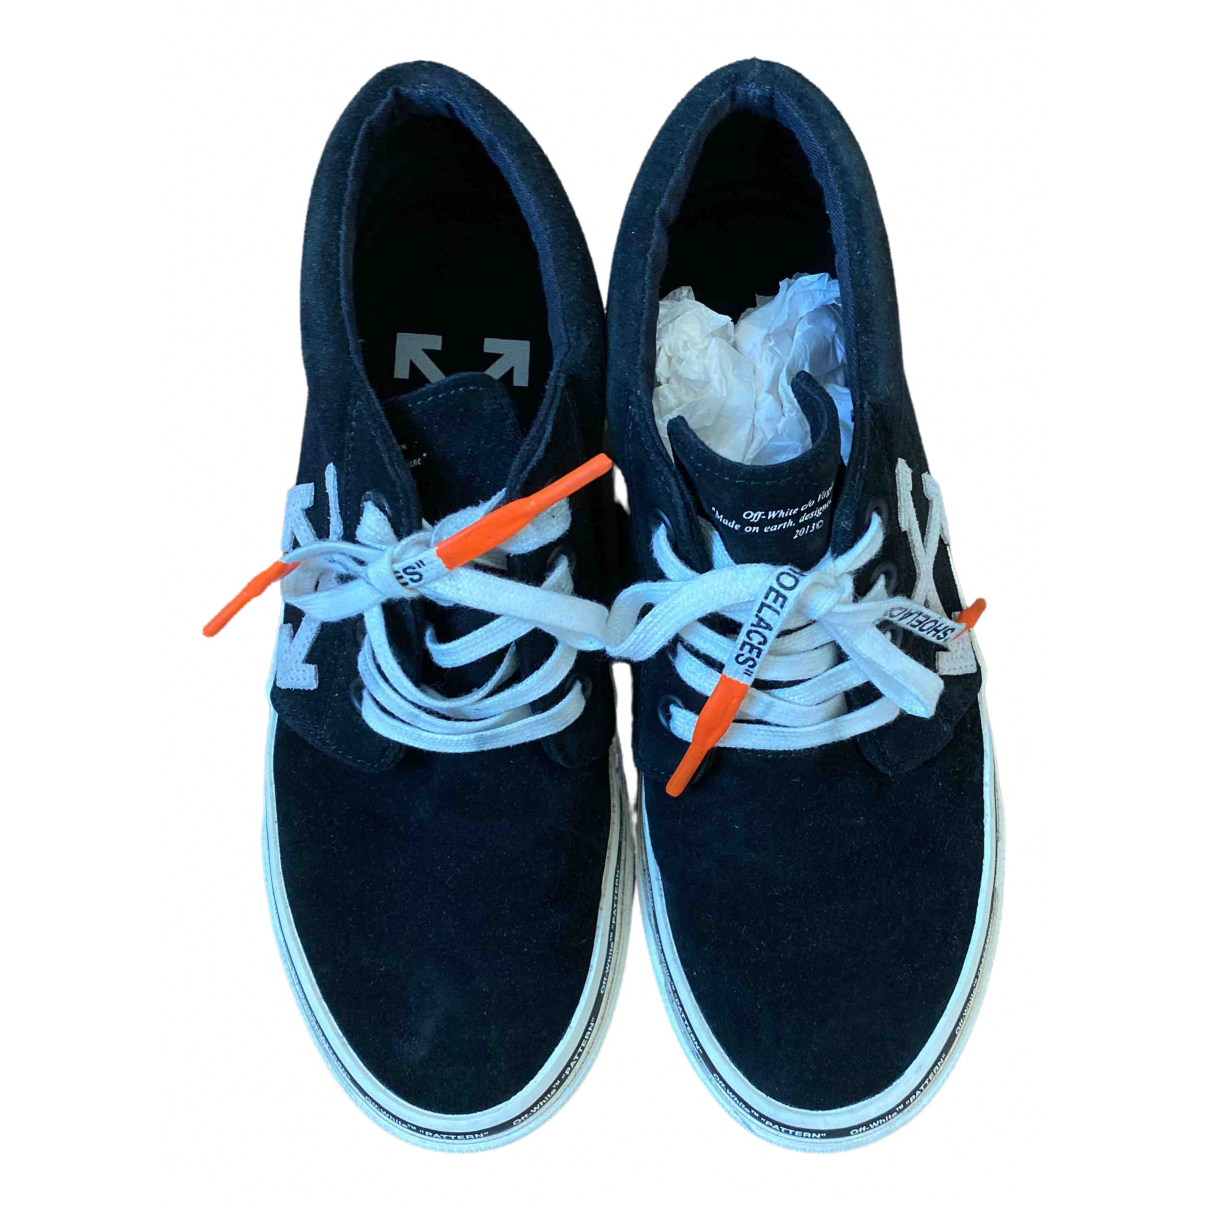 Off-white \N Black Suede Trainers for Men 42 IT